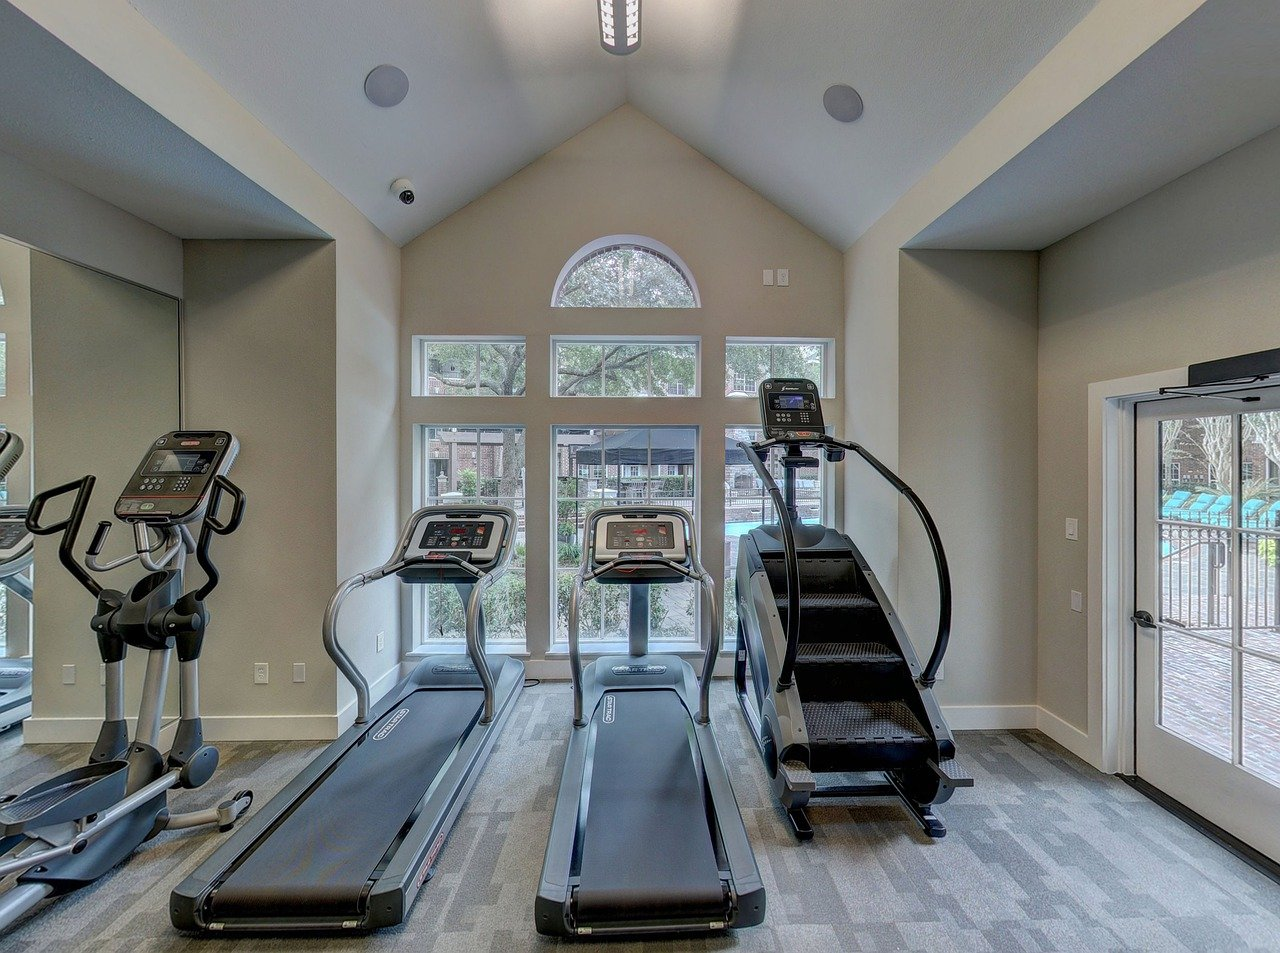 Several home devices like treadmills for exercising.